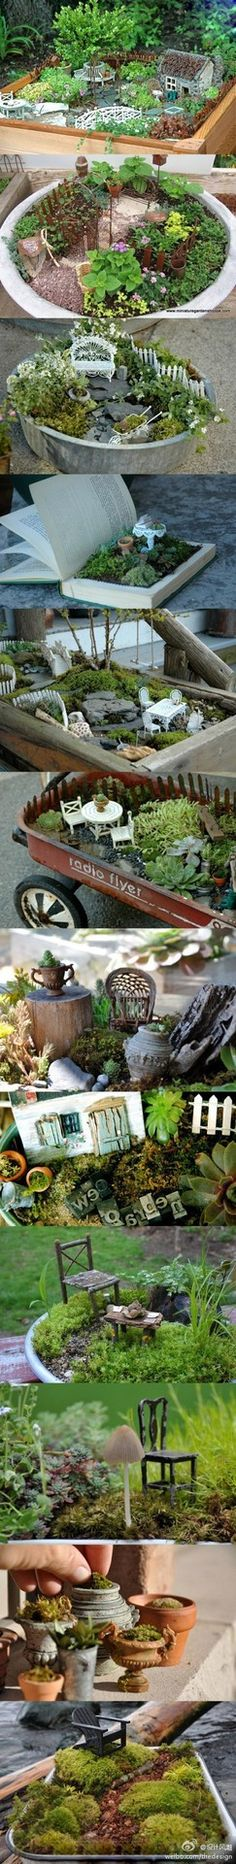 Some of these miniature gardens are precious!